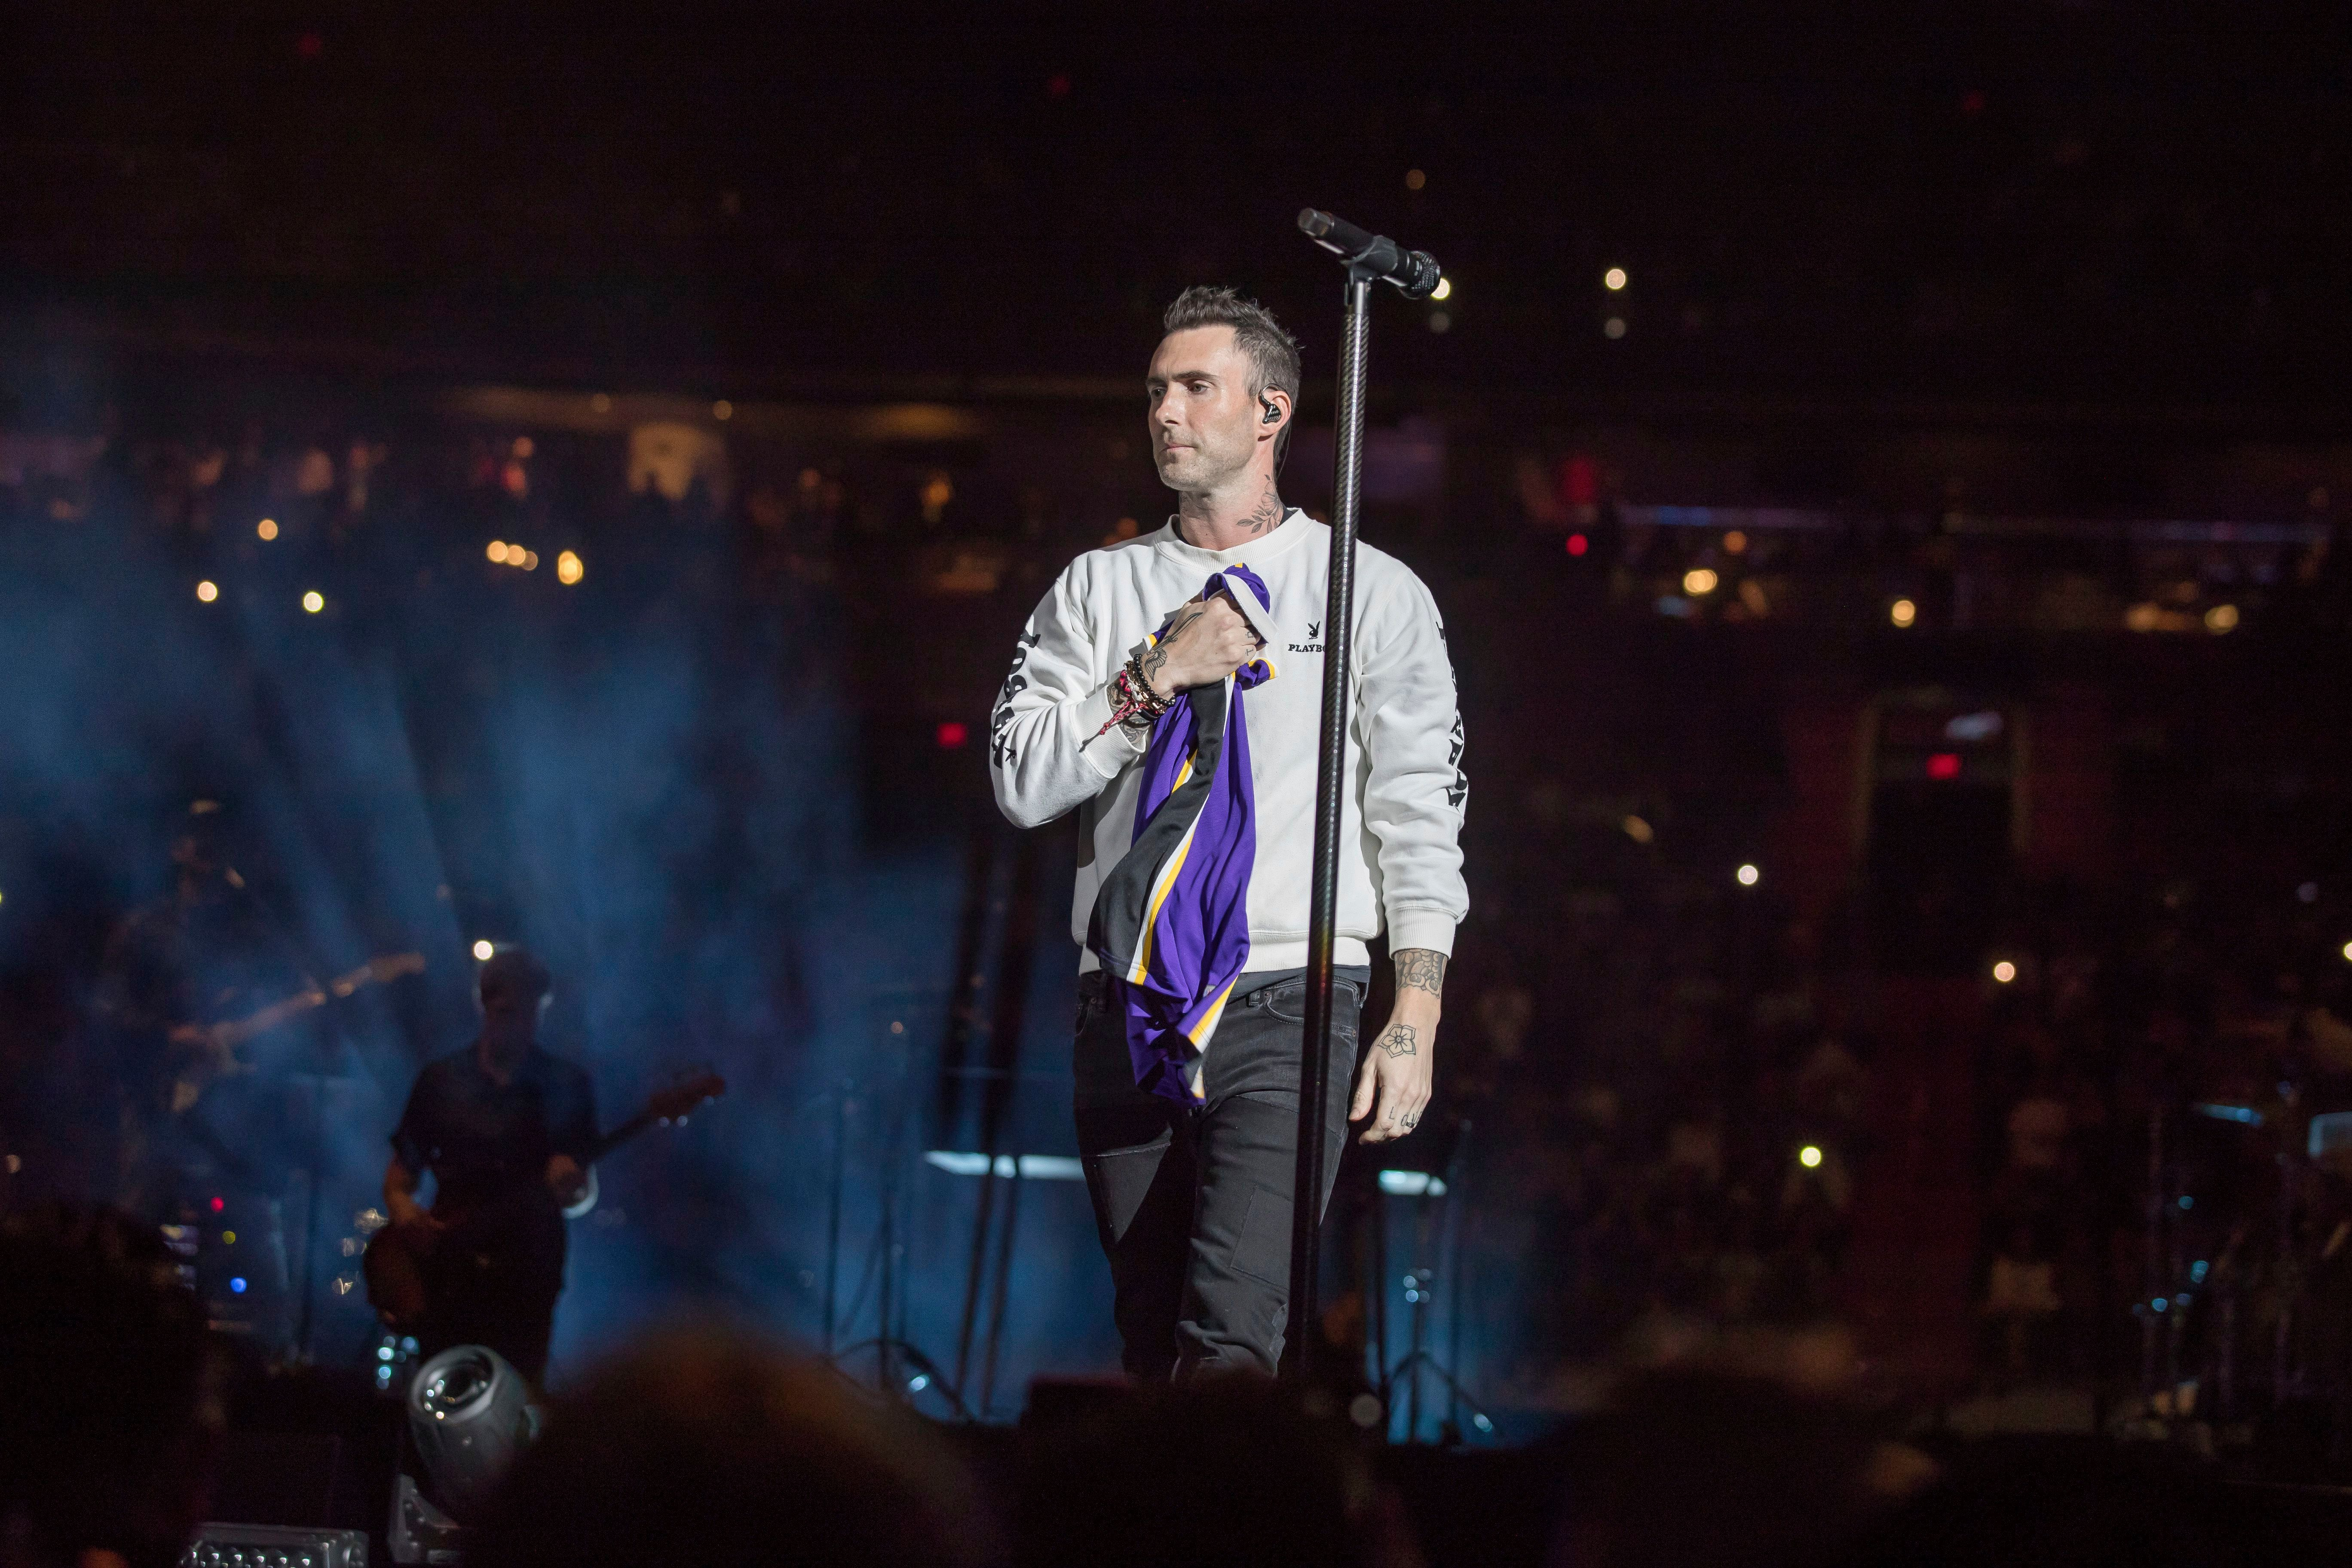 Watch Maroon 5 Pay Tribute to Kobe Bryant With 'Memories' - EpicNews